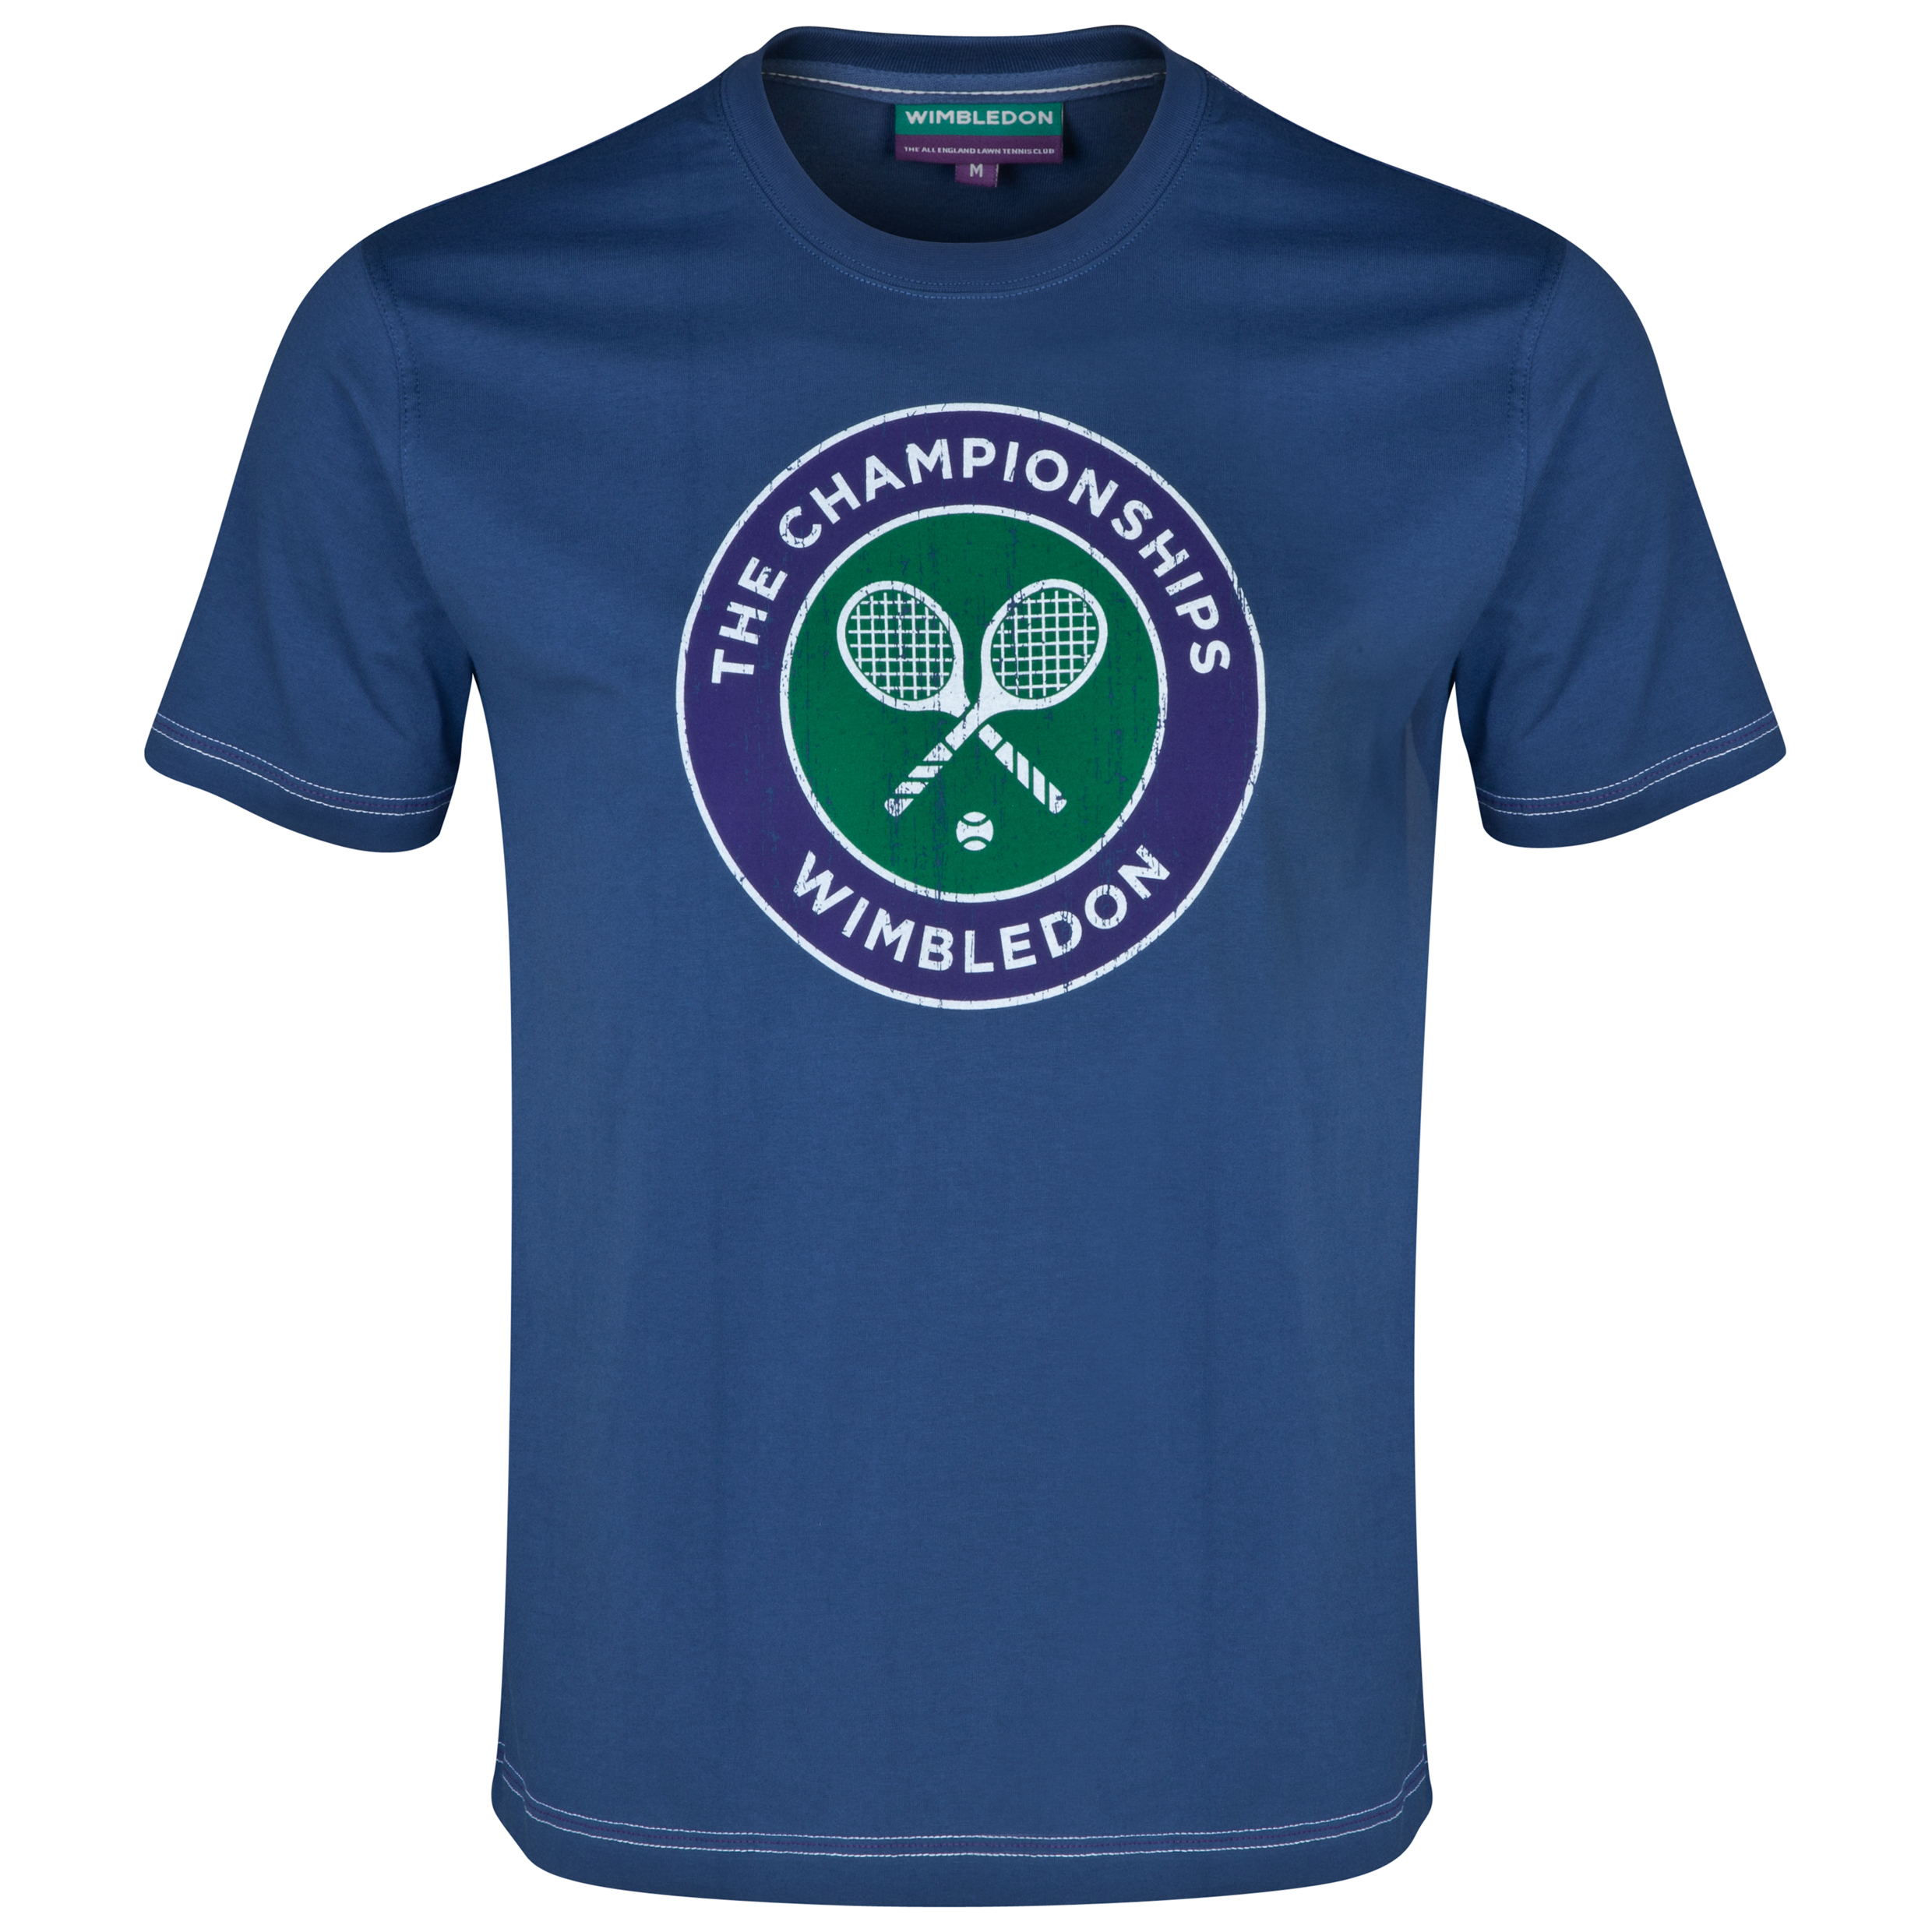 Wimbledon Classic Distressed Rackets T-Shirt Navy